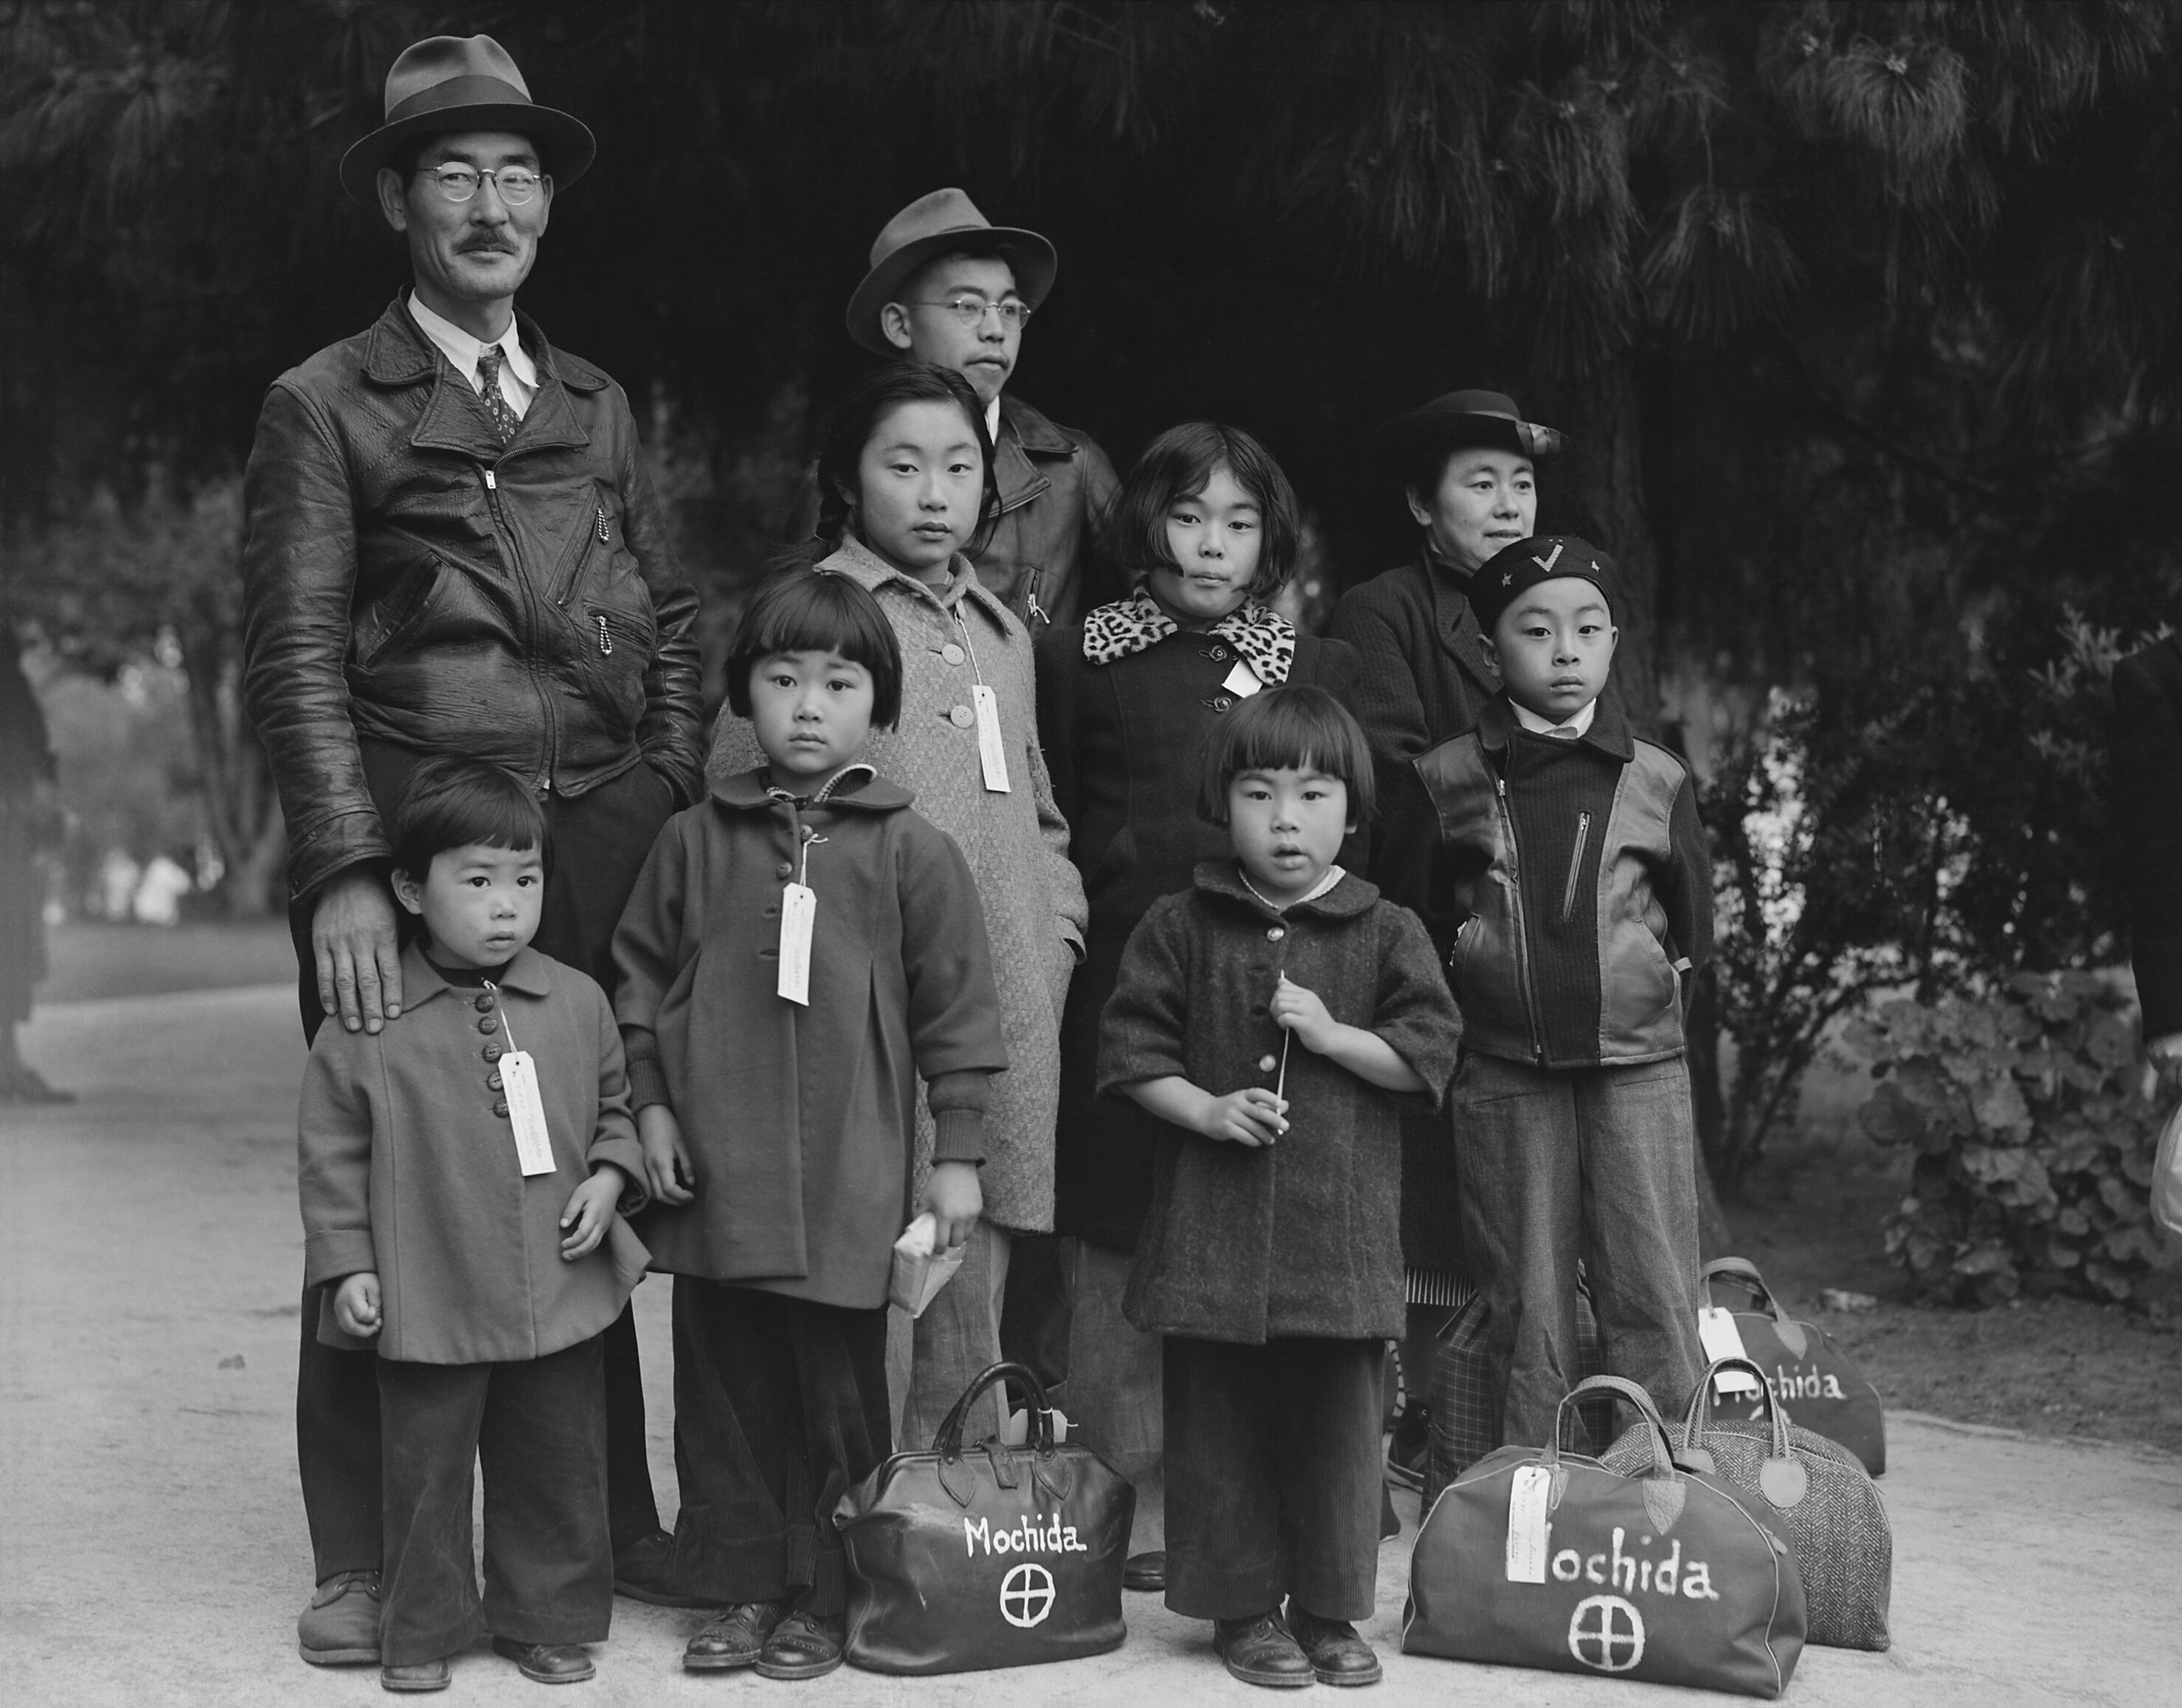 internment of japanese americans wikipedia